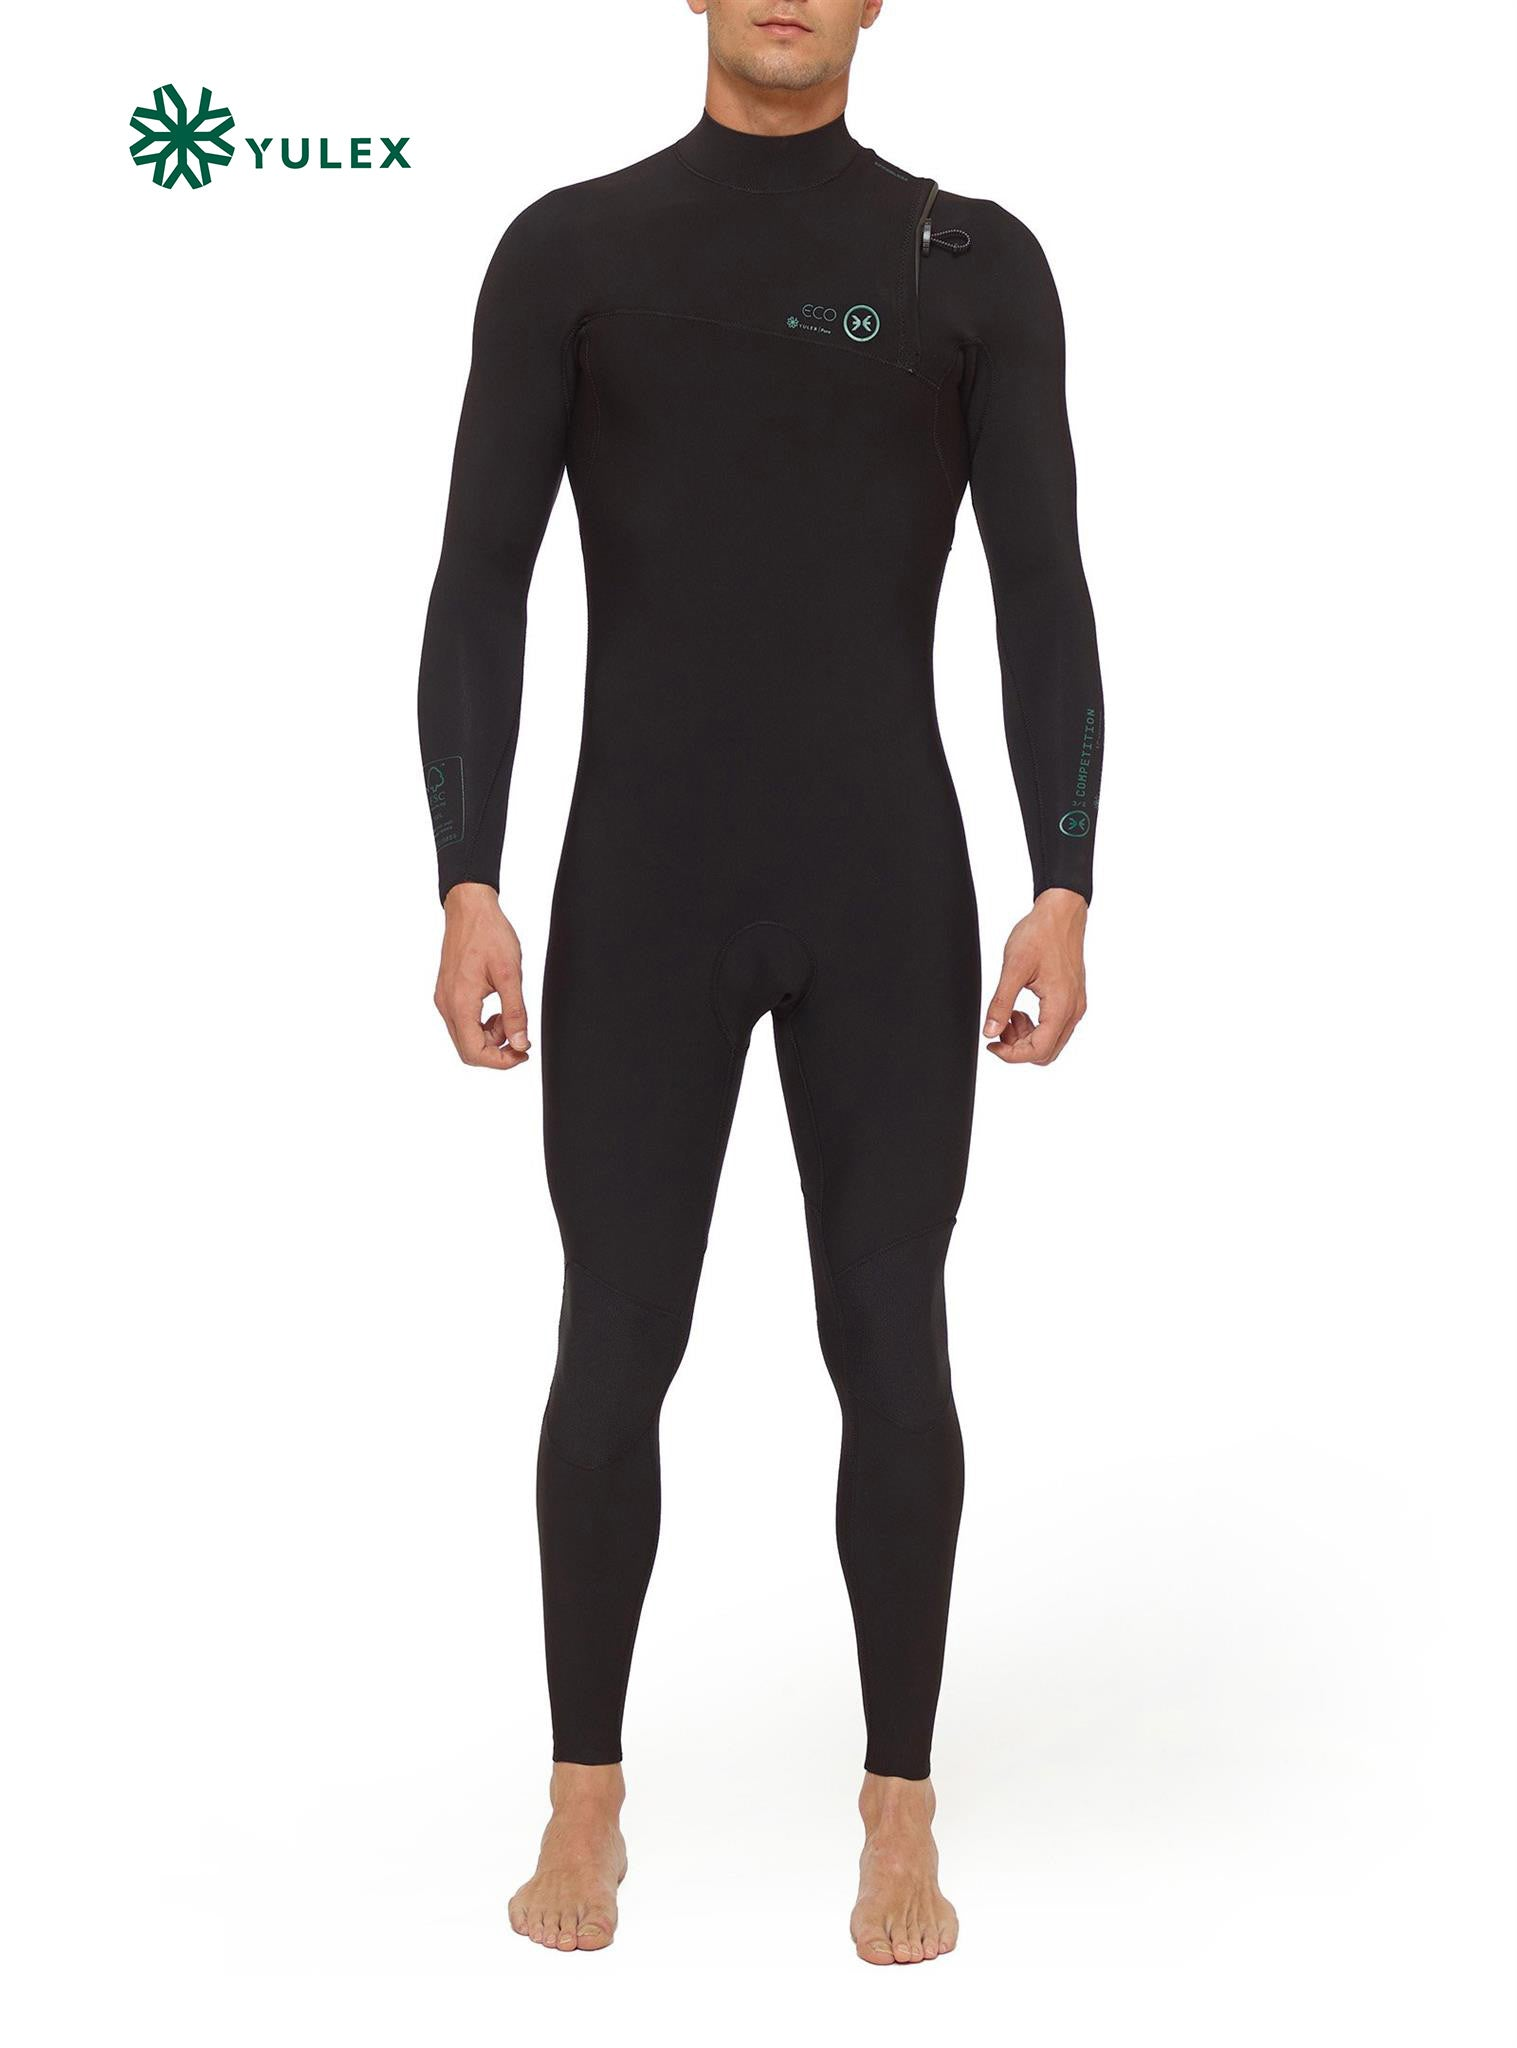 Wetsuit Man Competition Yulex 3/2 Zipperless Black